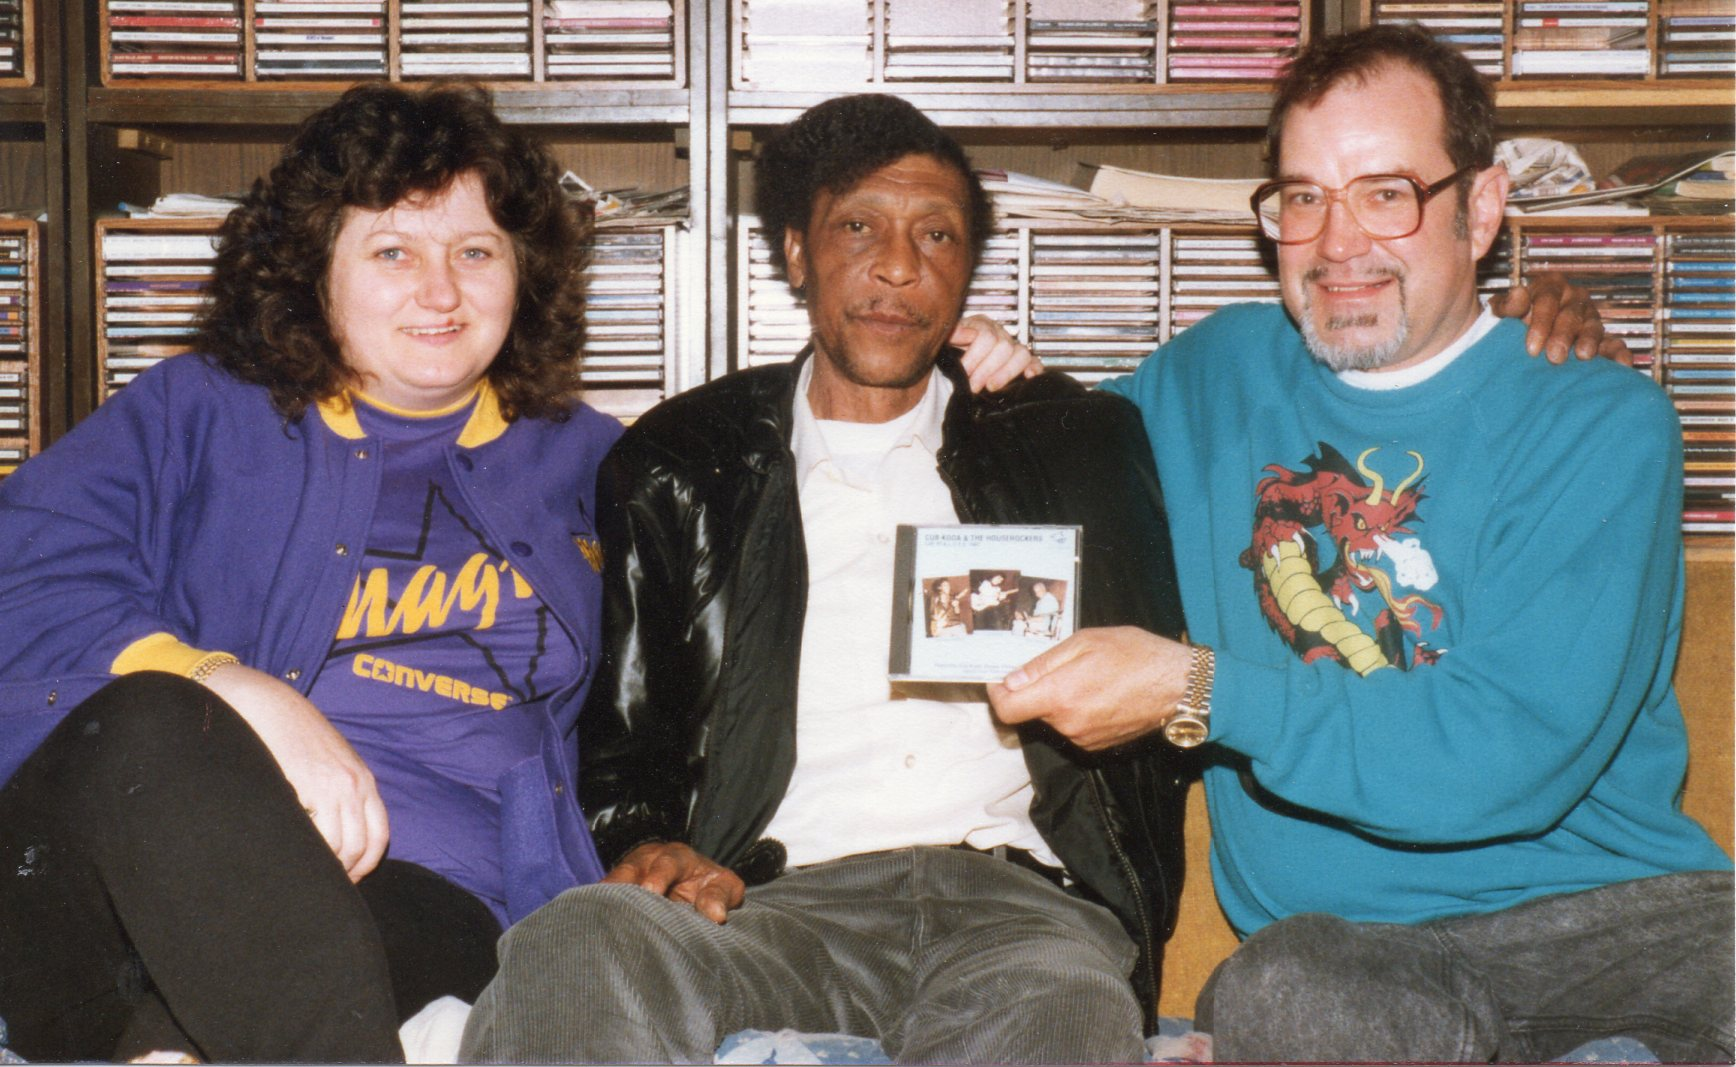 Hound Dog Taylor of the House Rockers & Susan & John Forward